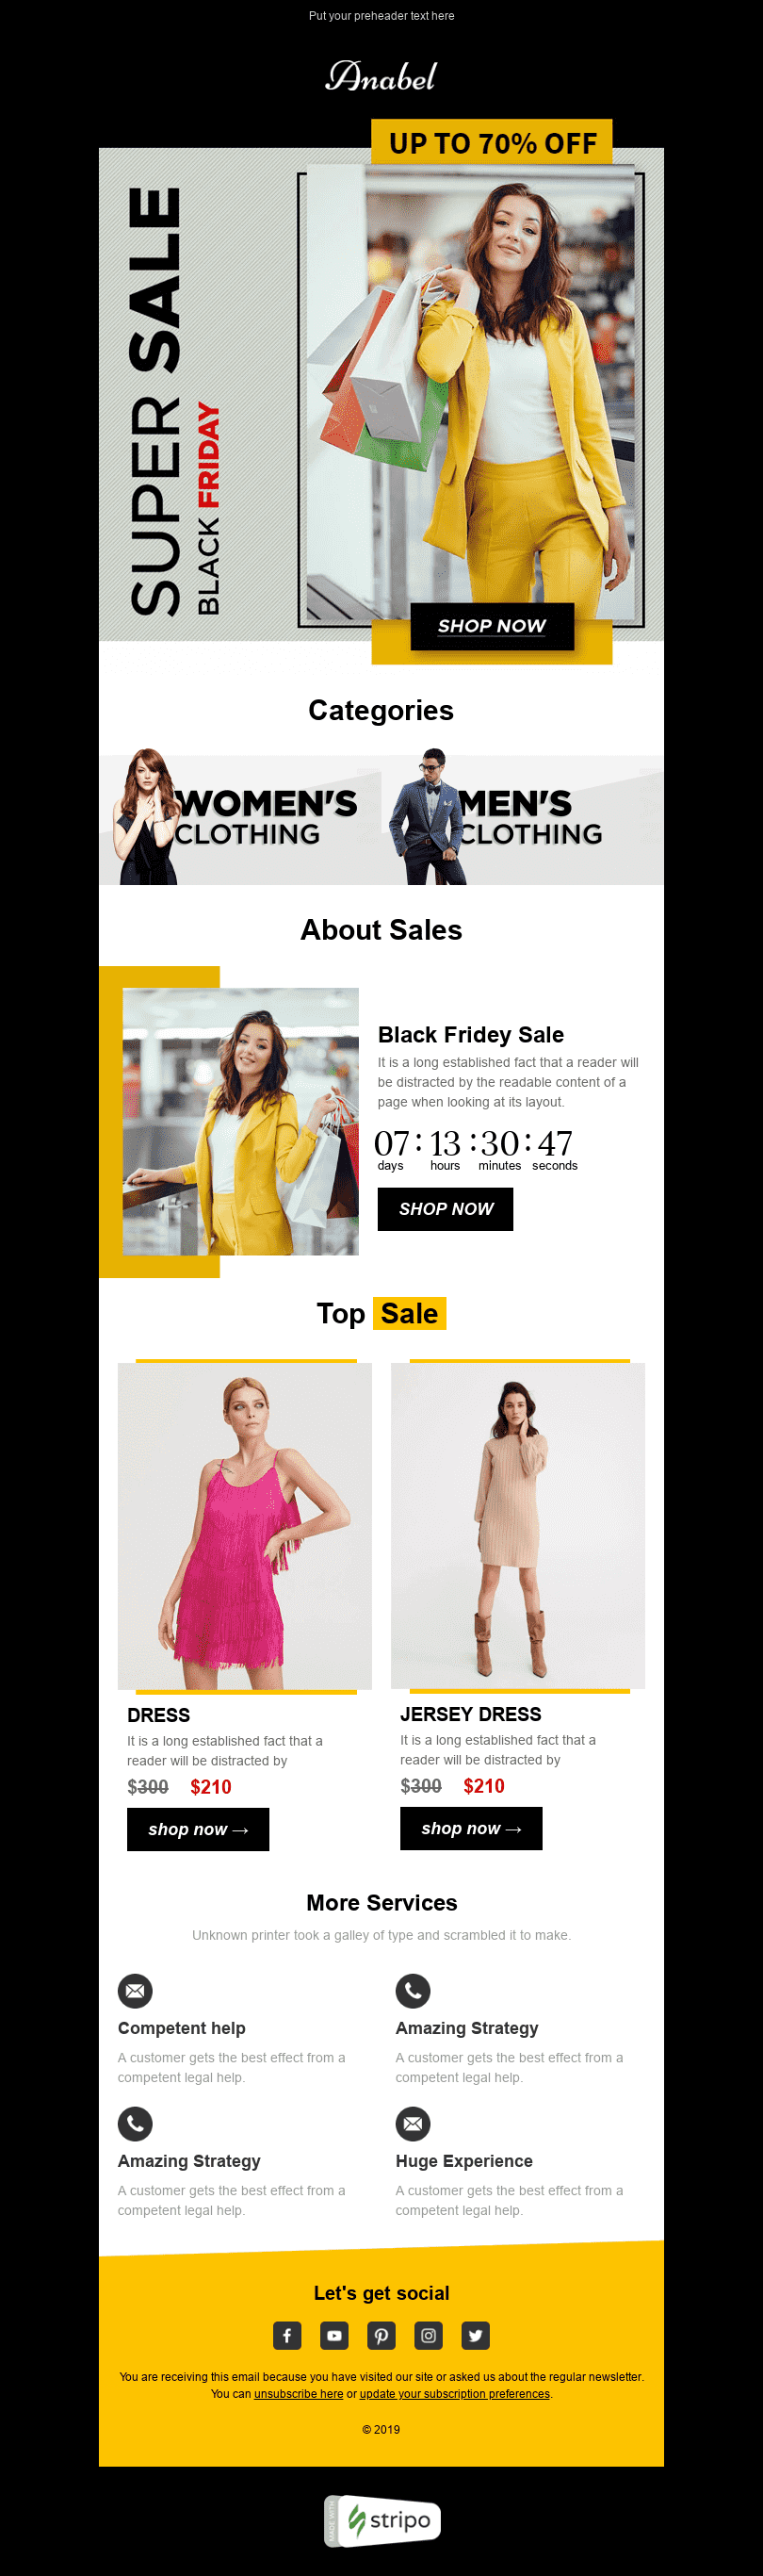 Promo Email Template «Hot prices» for Fashion industry desktop view